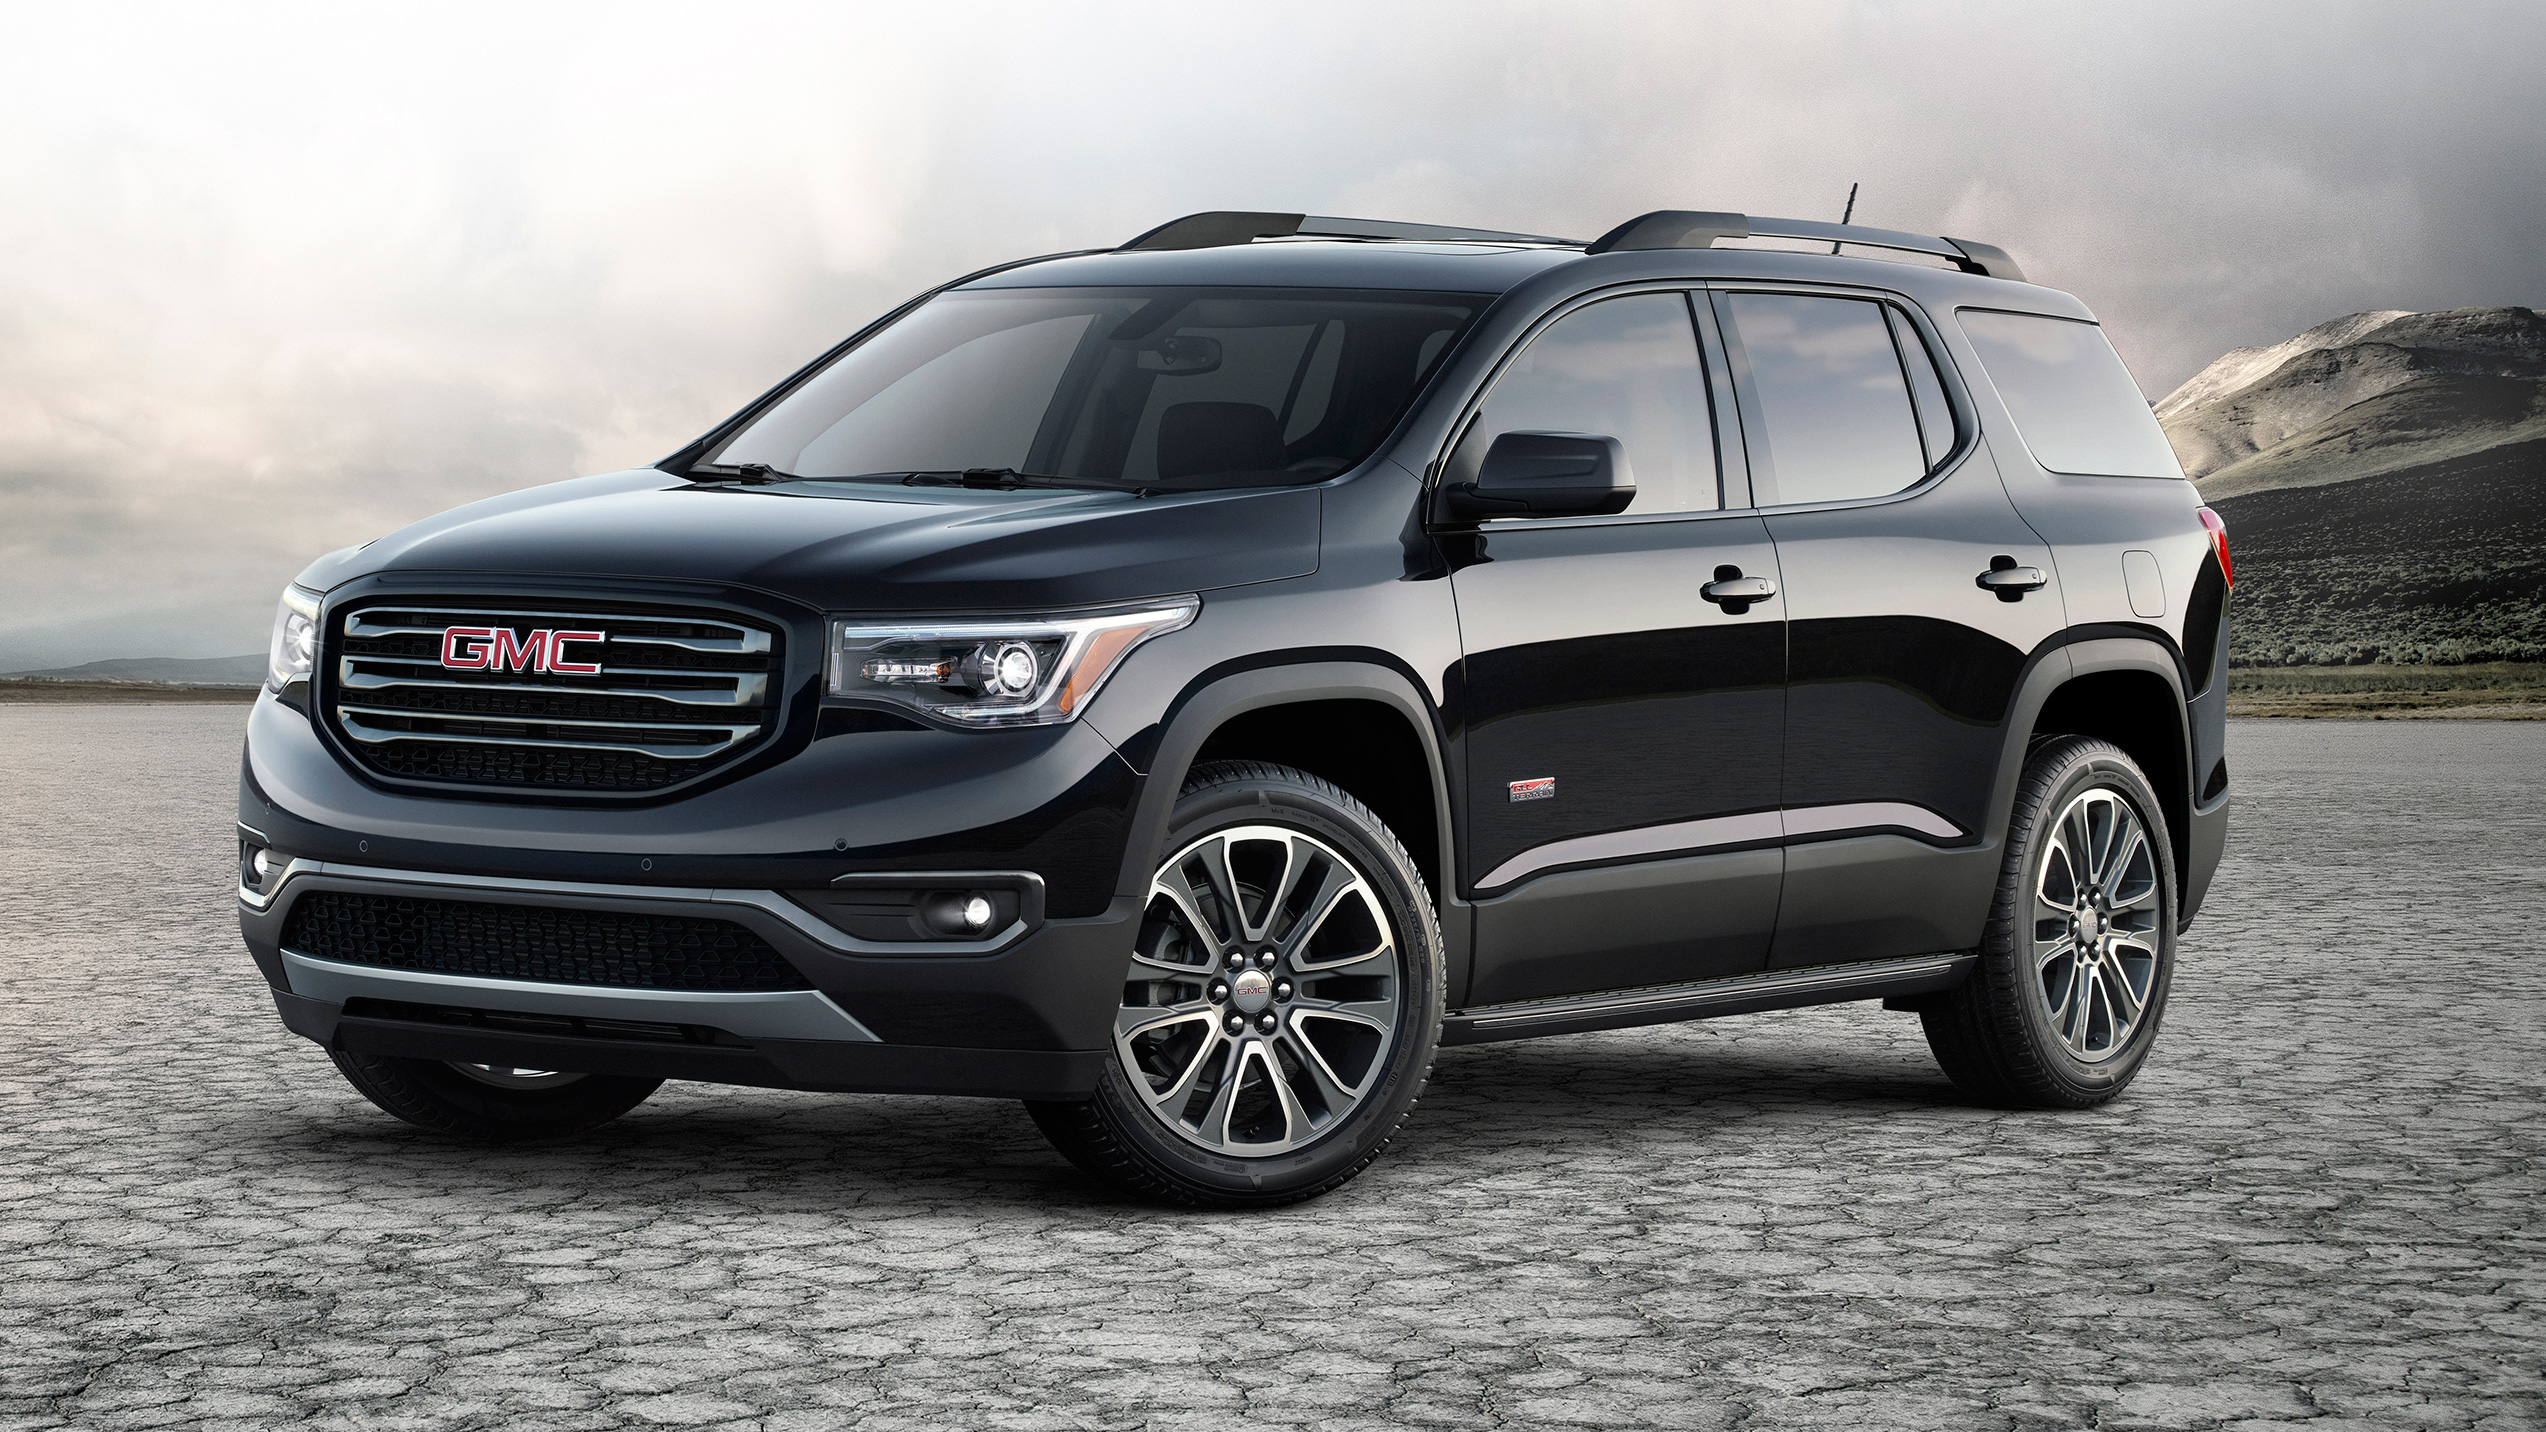 2017 Gmc Terrain Suv >> Gmc Acadia Prices Reviews And Pictures Us News | Autos Post